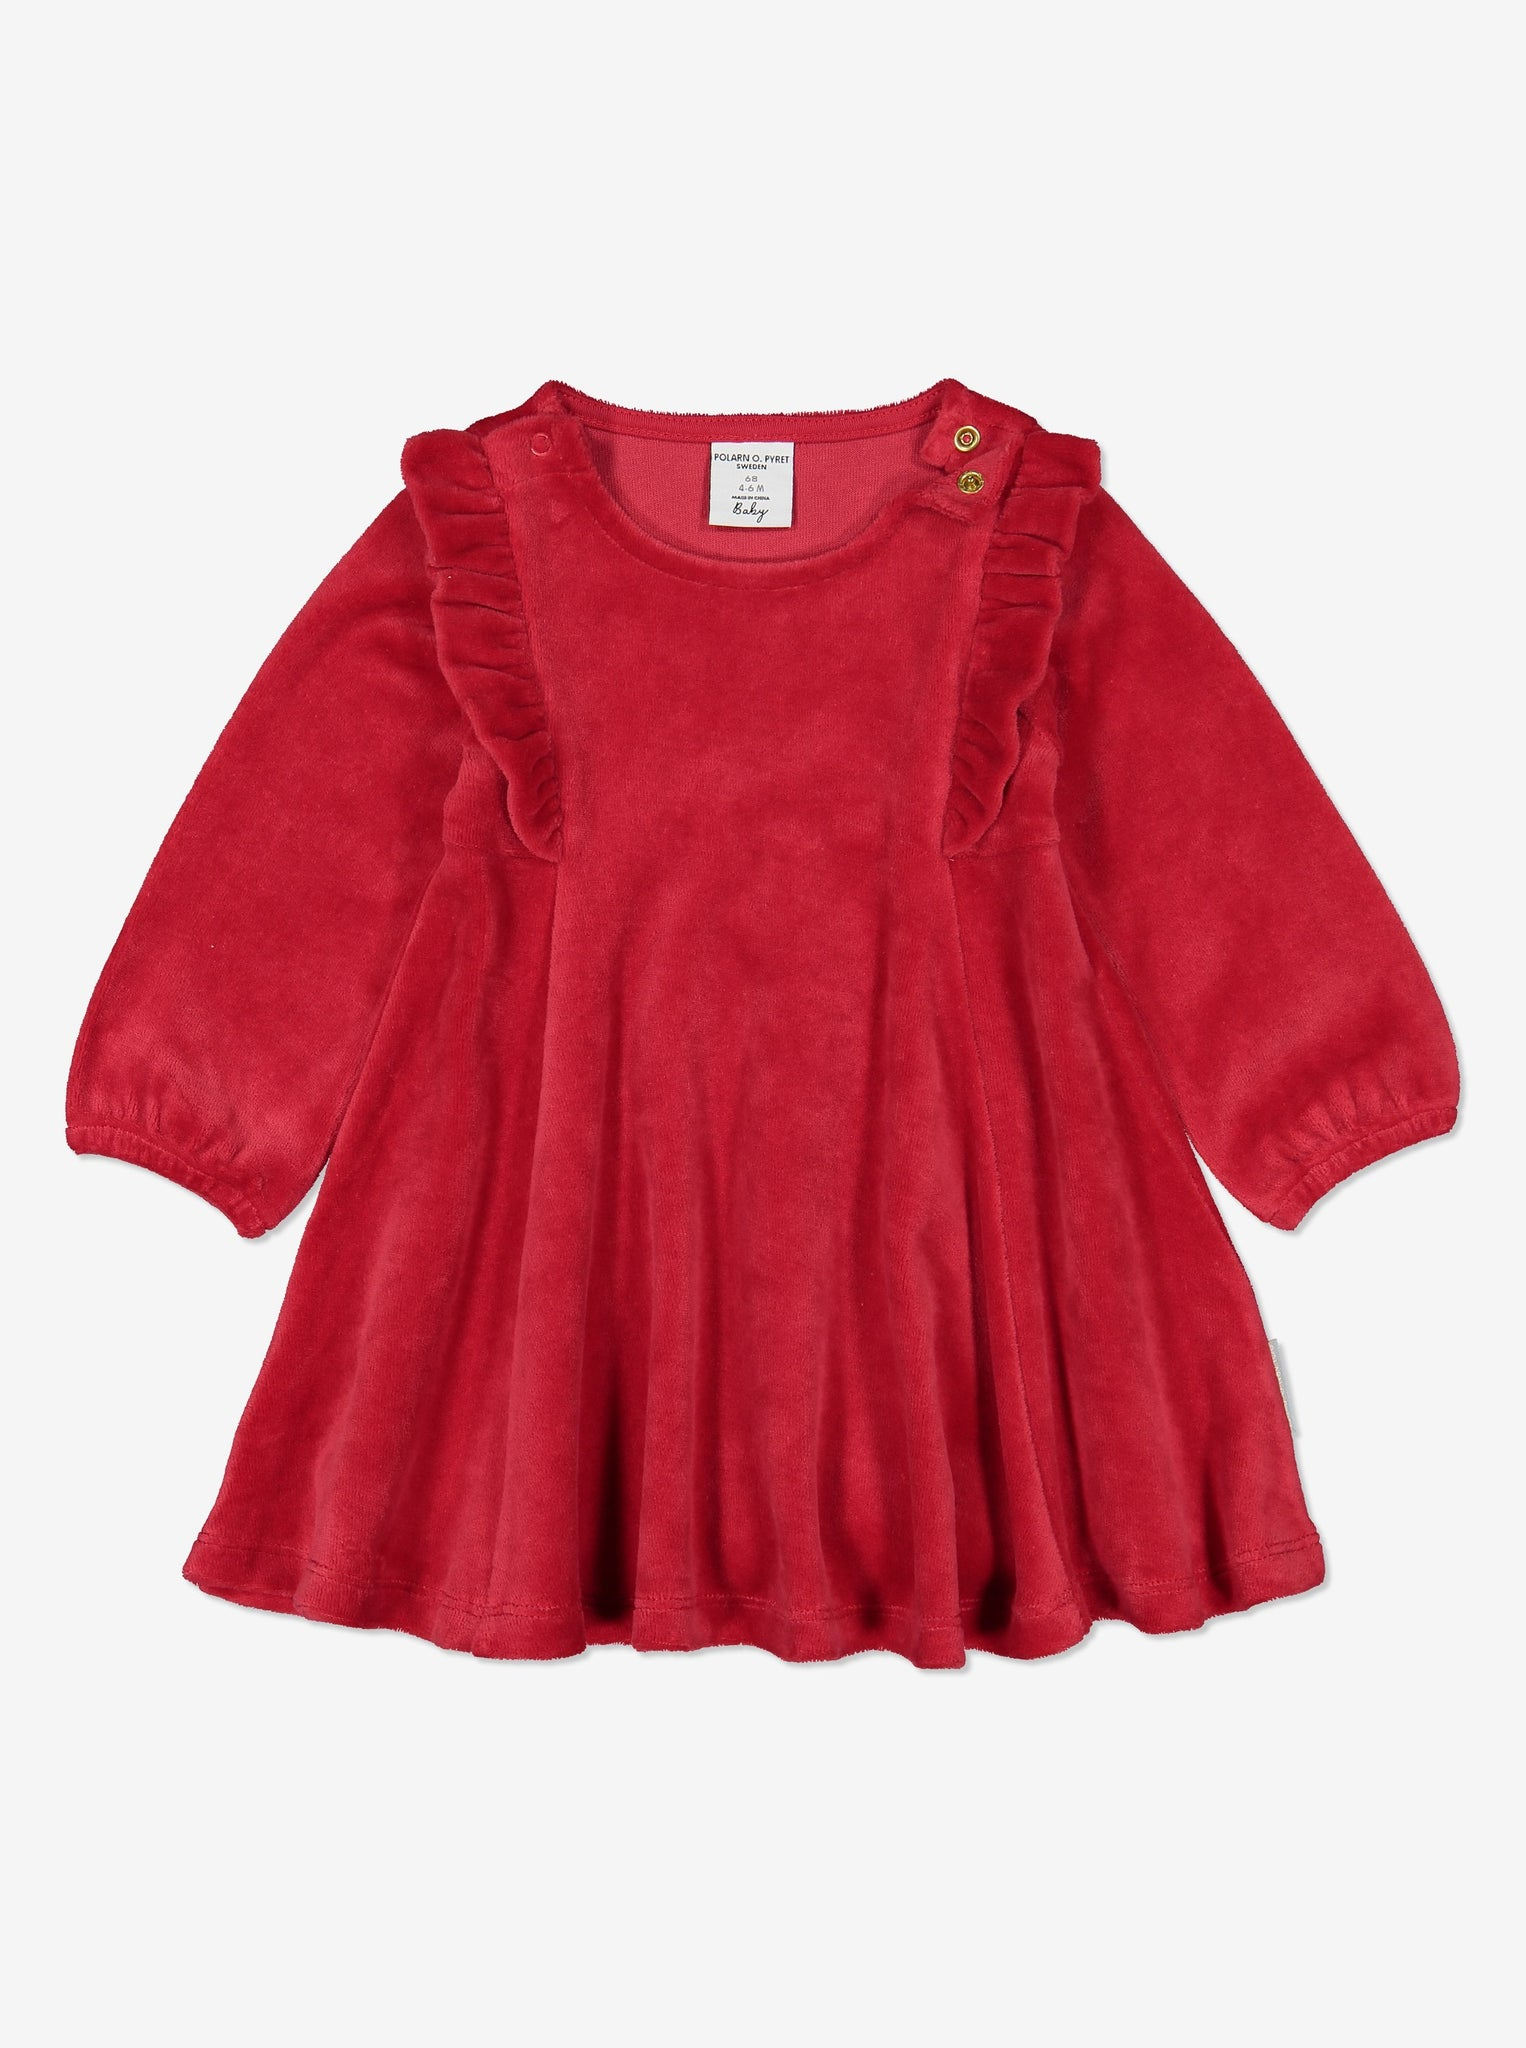 Kids Organic Cotton Soft Velour Dress 0-1years Red Girl